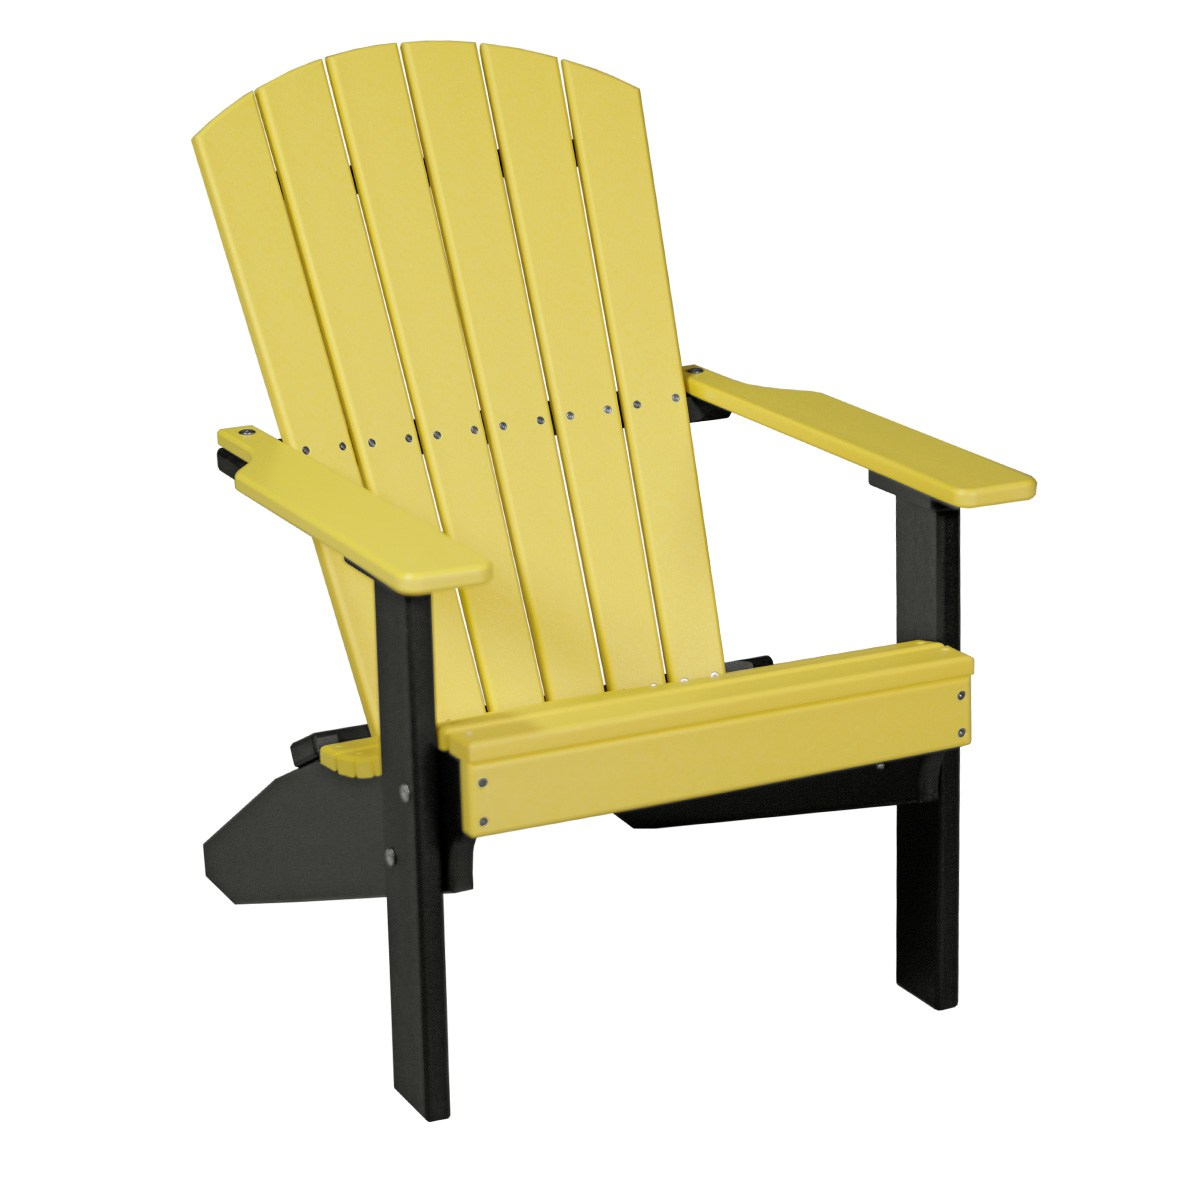 yellow adirondack chairs plastic tables and cohoes lakeside chair recycled patio fine oak things